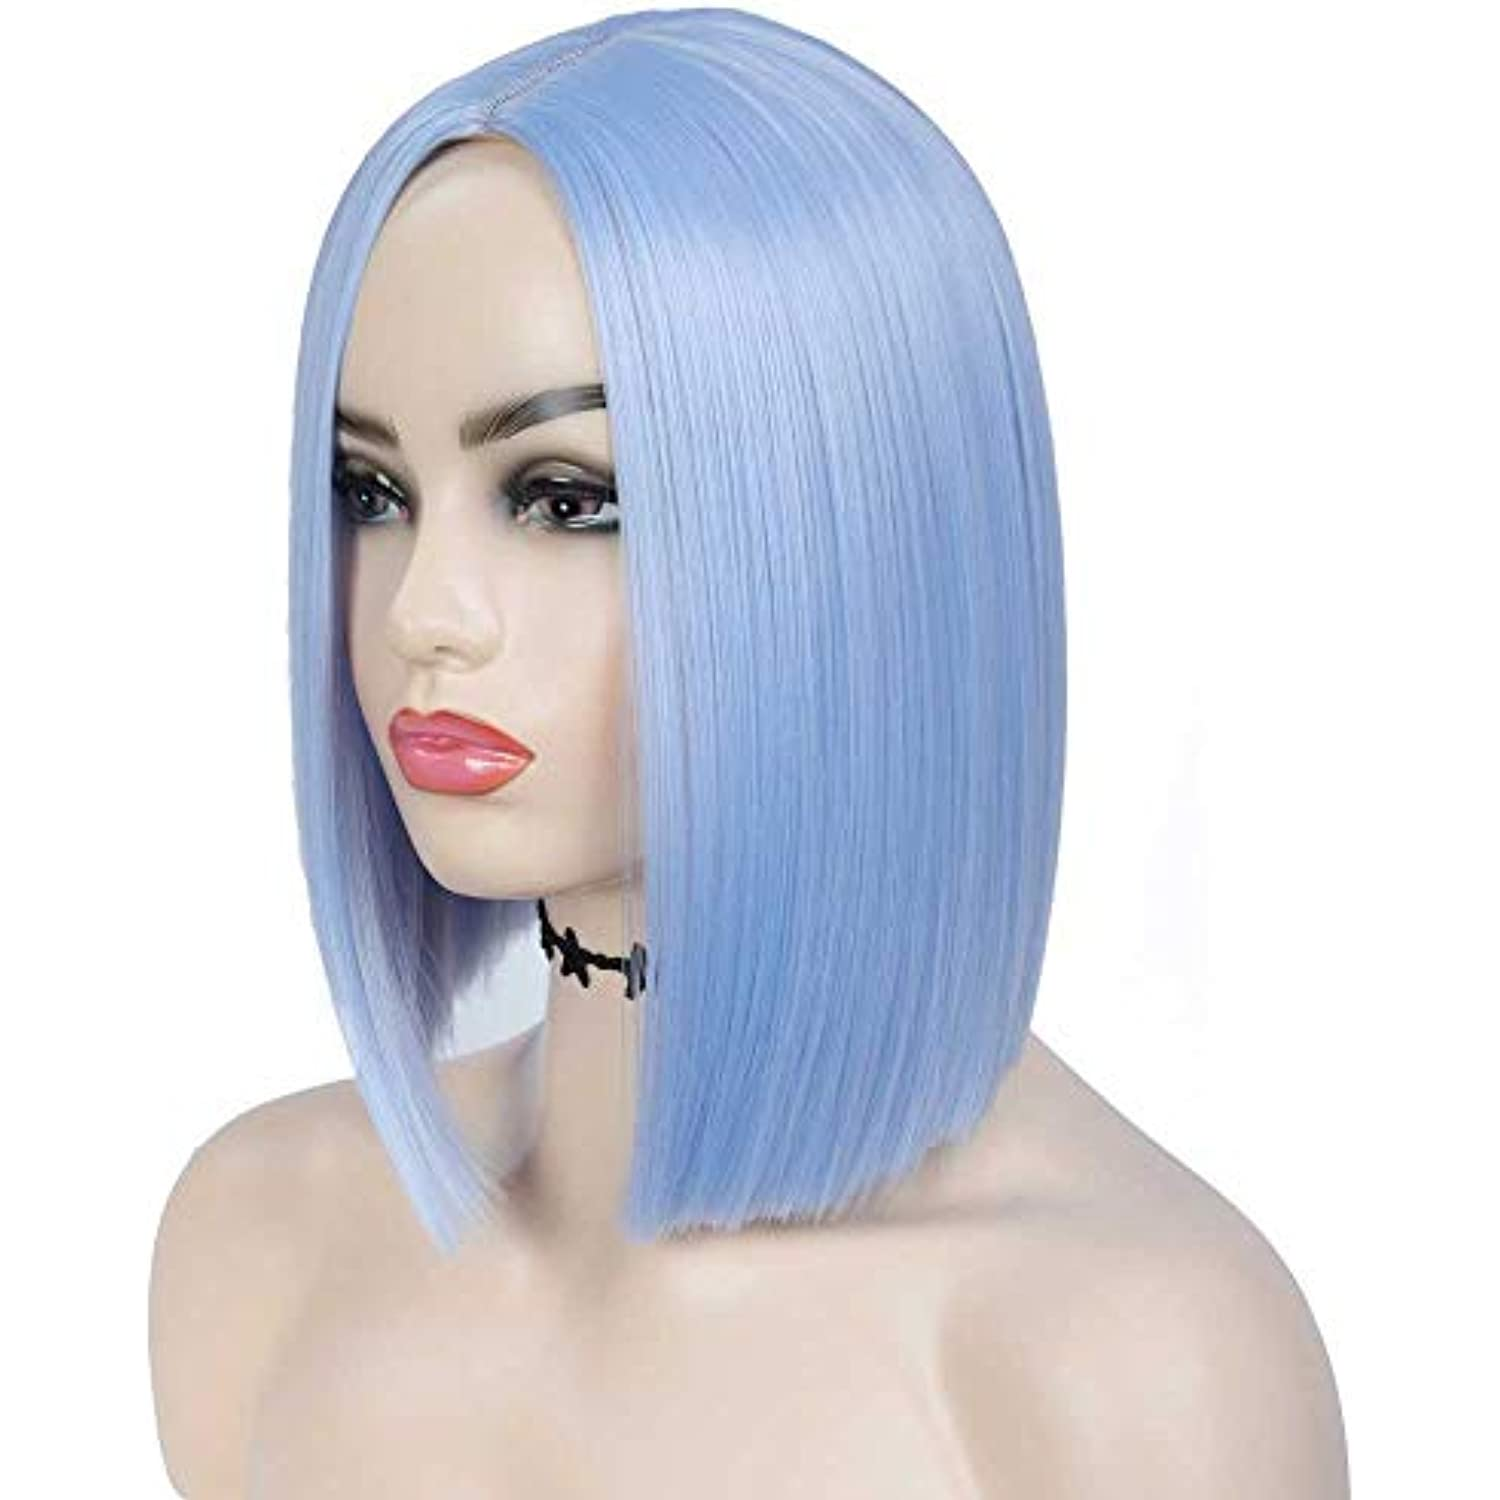 Tereshar BLUE/BLACK Wig Short Straight Bob Hair Wigs for Women Middle Part Heat Resistant Colored Wigs for Daily Party Cosplay Use(12 inches)(LOT OF 9)